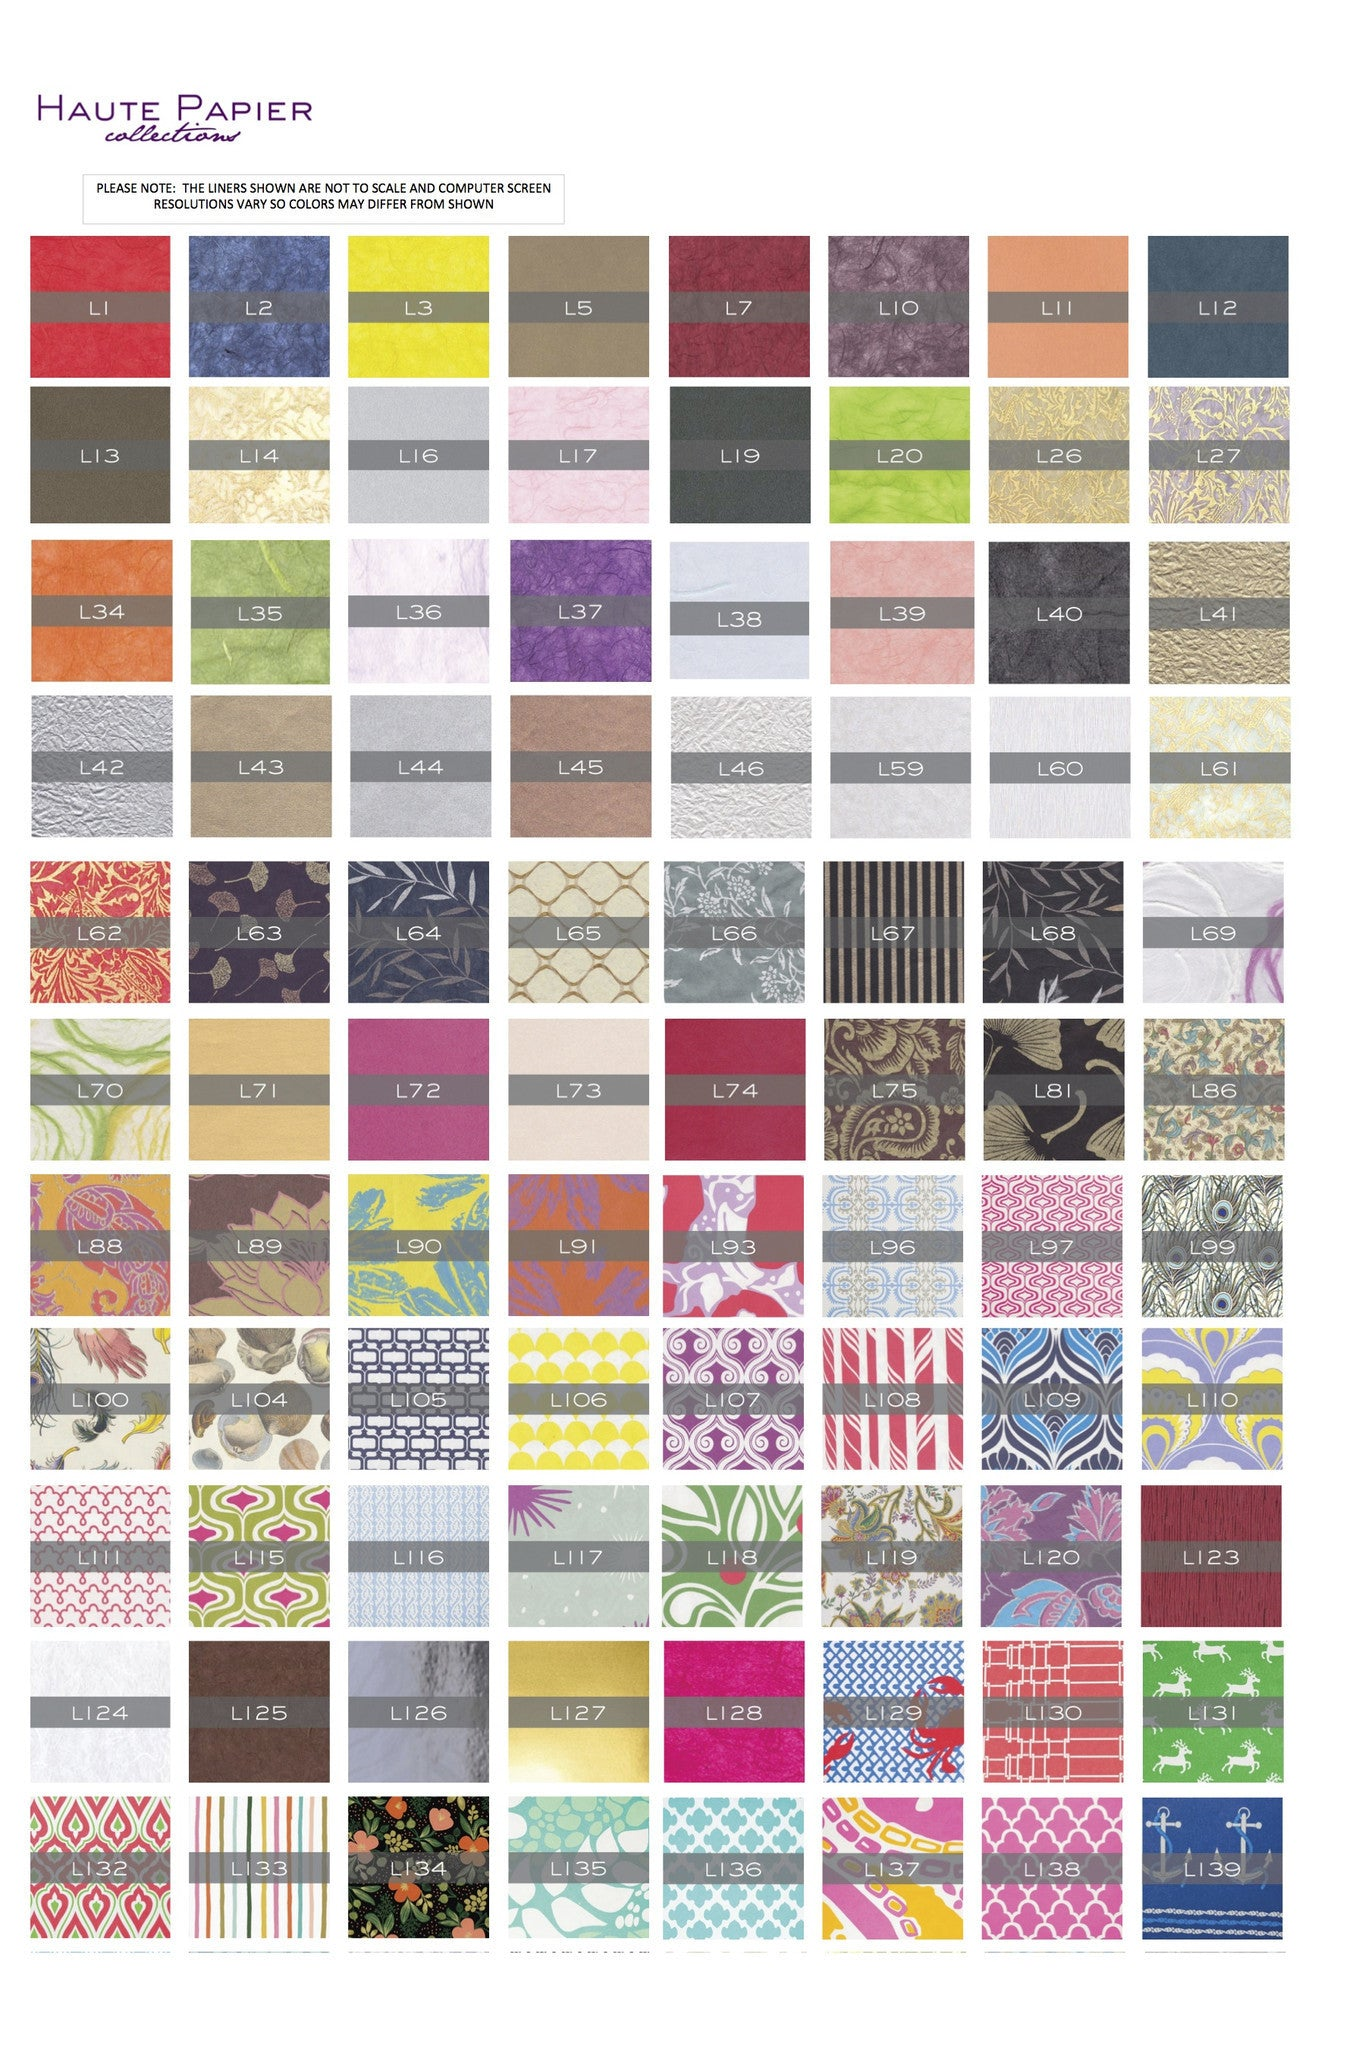 Haute Papier Envelope Liner Options